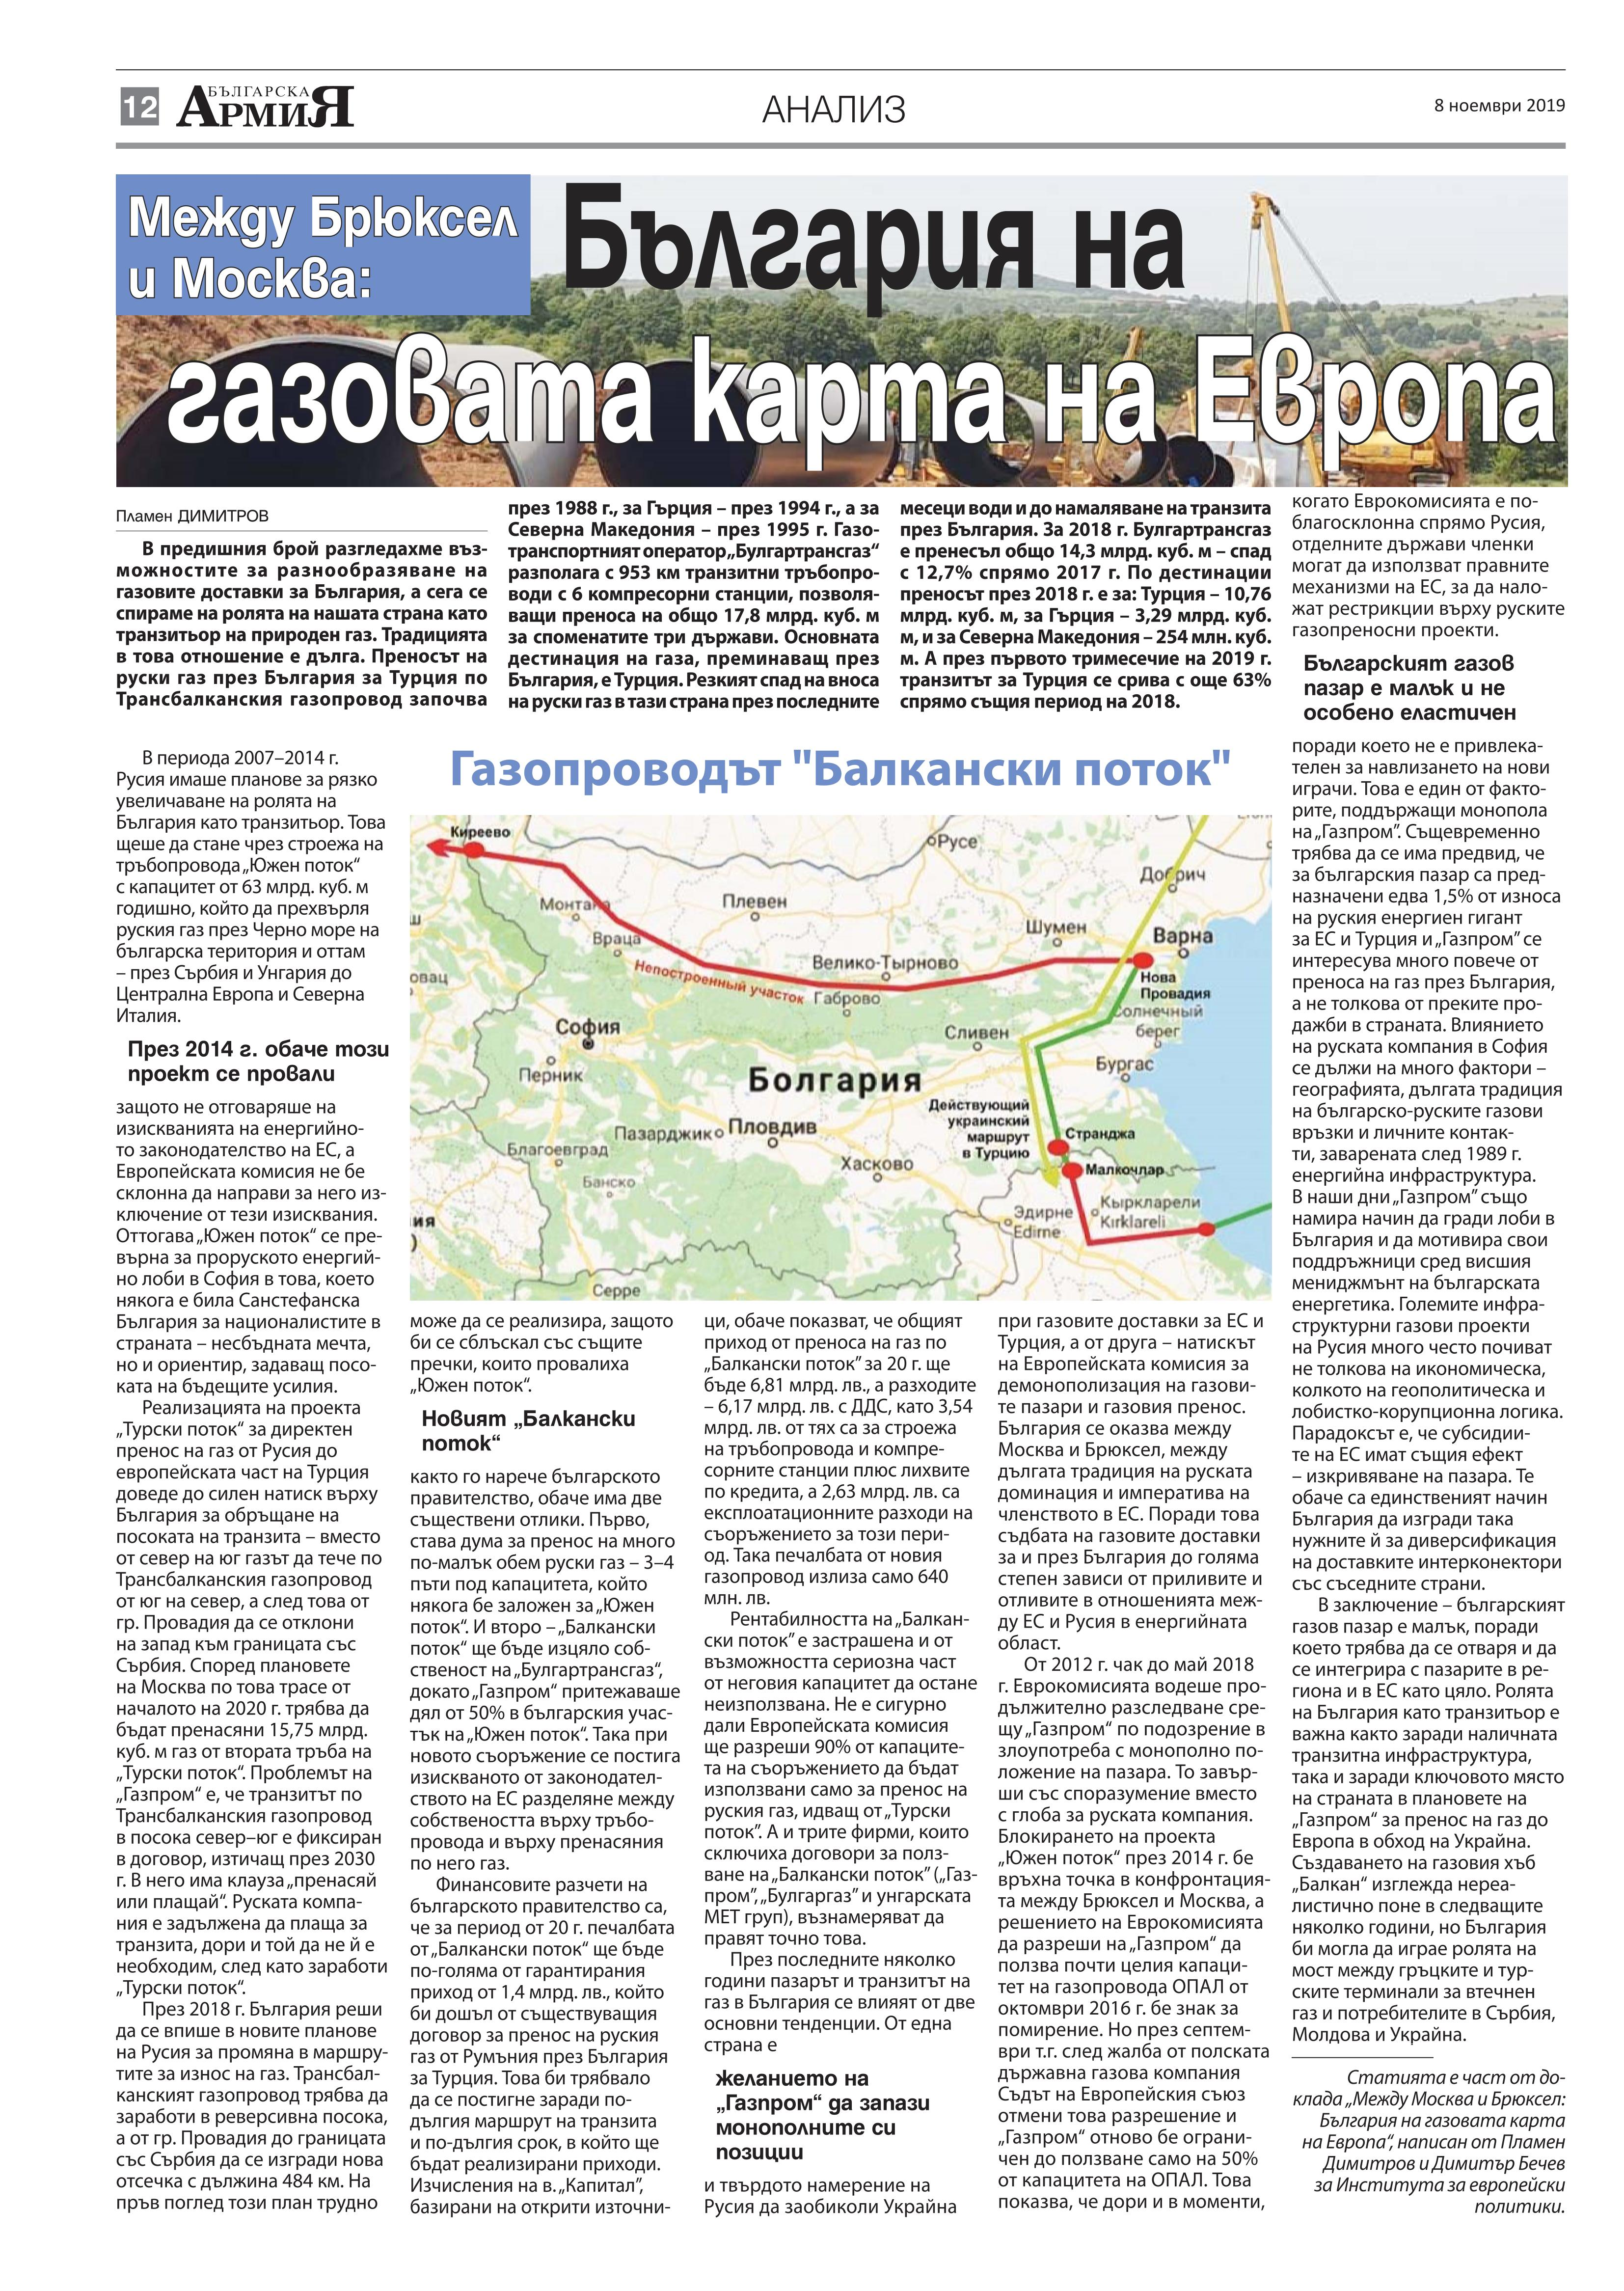 https://www.armymedia.bg/wp-content/uploads/2015/06/12.page1_-114.jpg